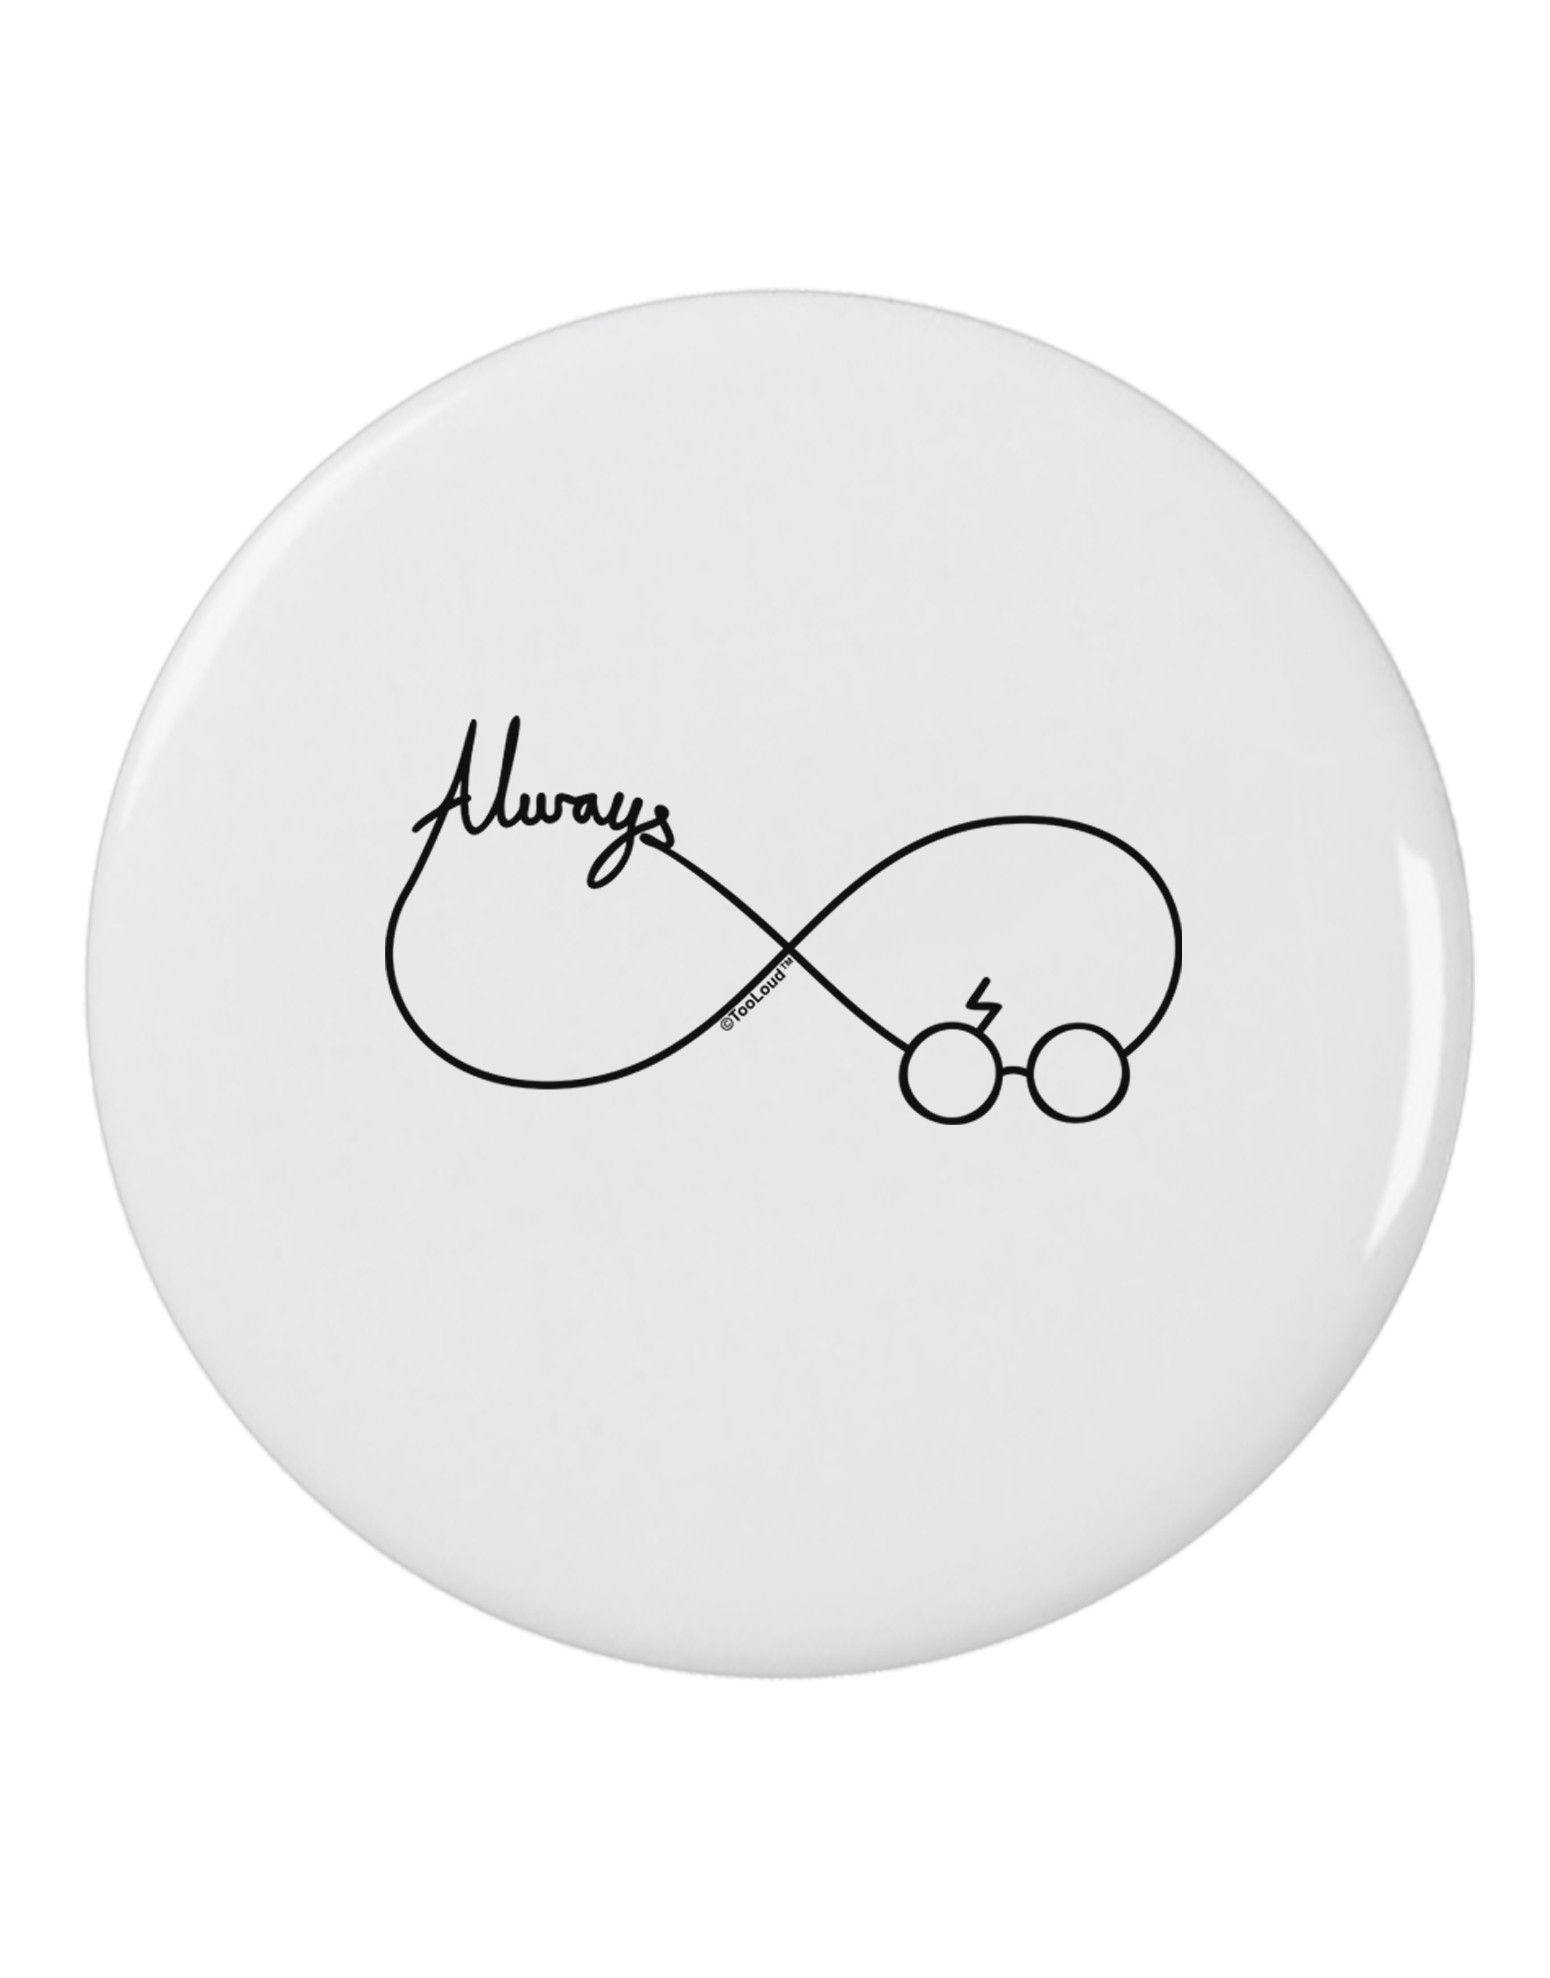 Always Infinity Symbol 2 25 Round Pin Button Harry Potter Tattoo Unique Harry Potter Symbols Harry Potter Phone